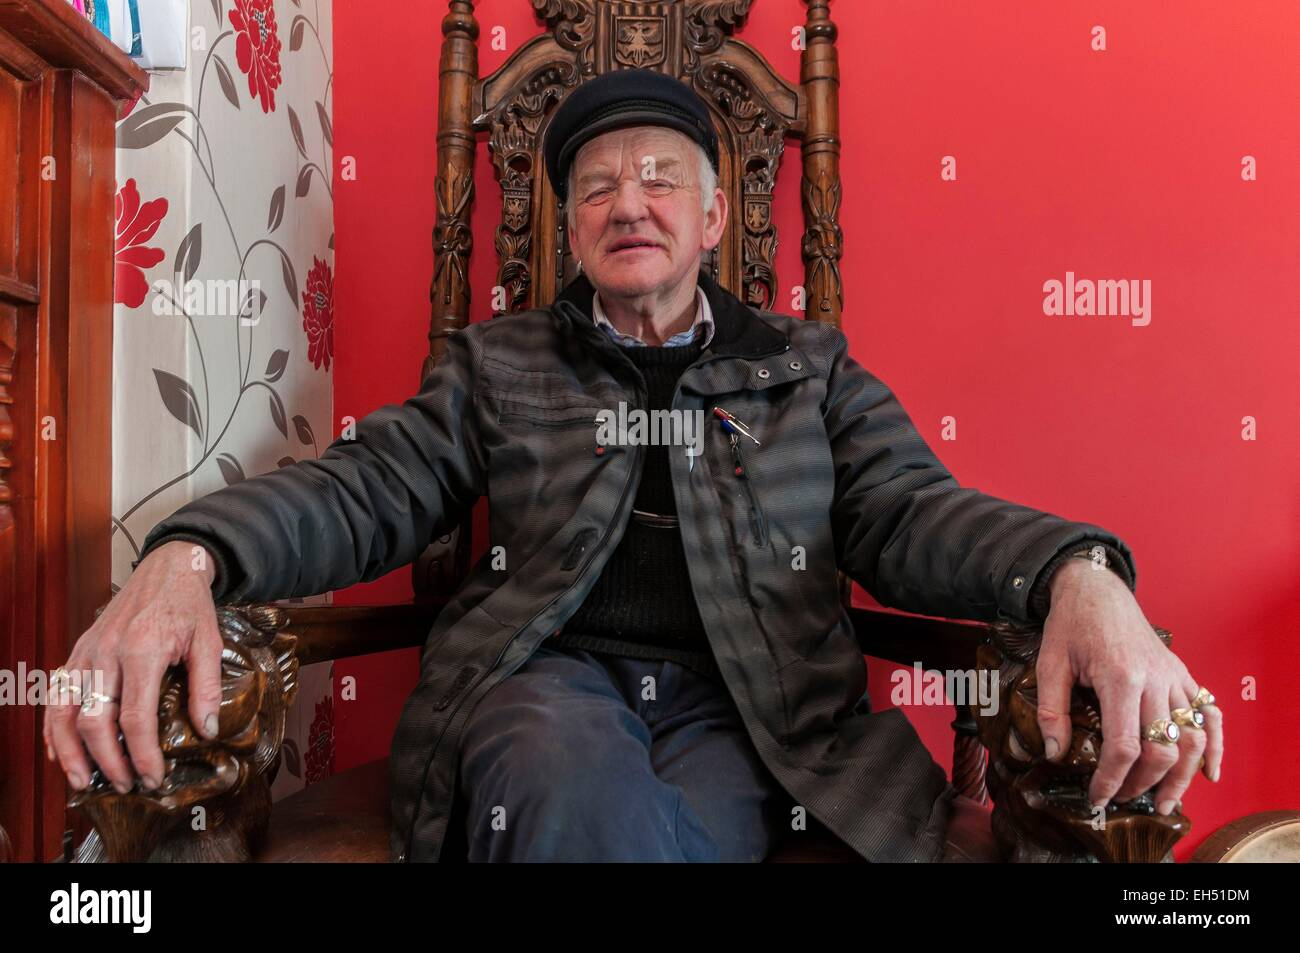 Ireland, Ulster, Donegal County, island of Tory, Patsy Dan Rodgers the King Of Tory in his home on his throne offering - Stock Image